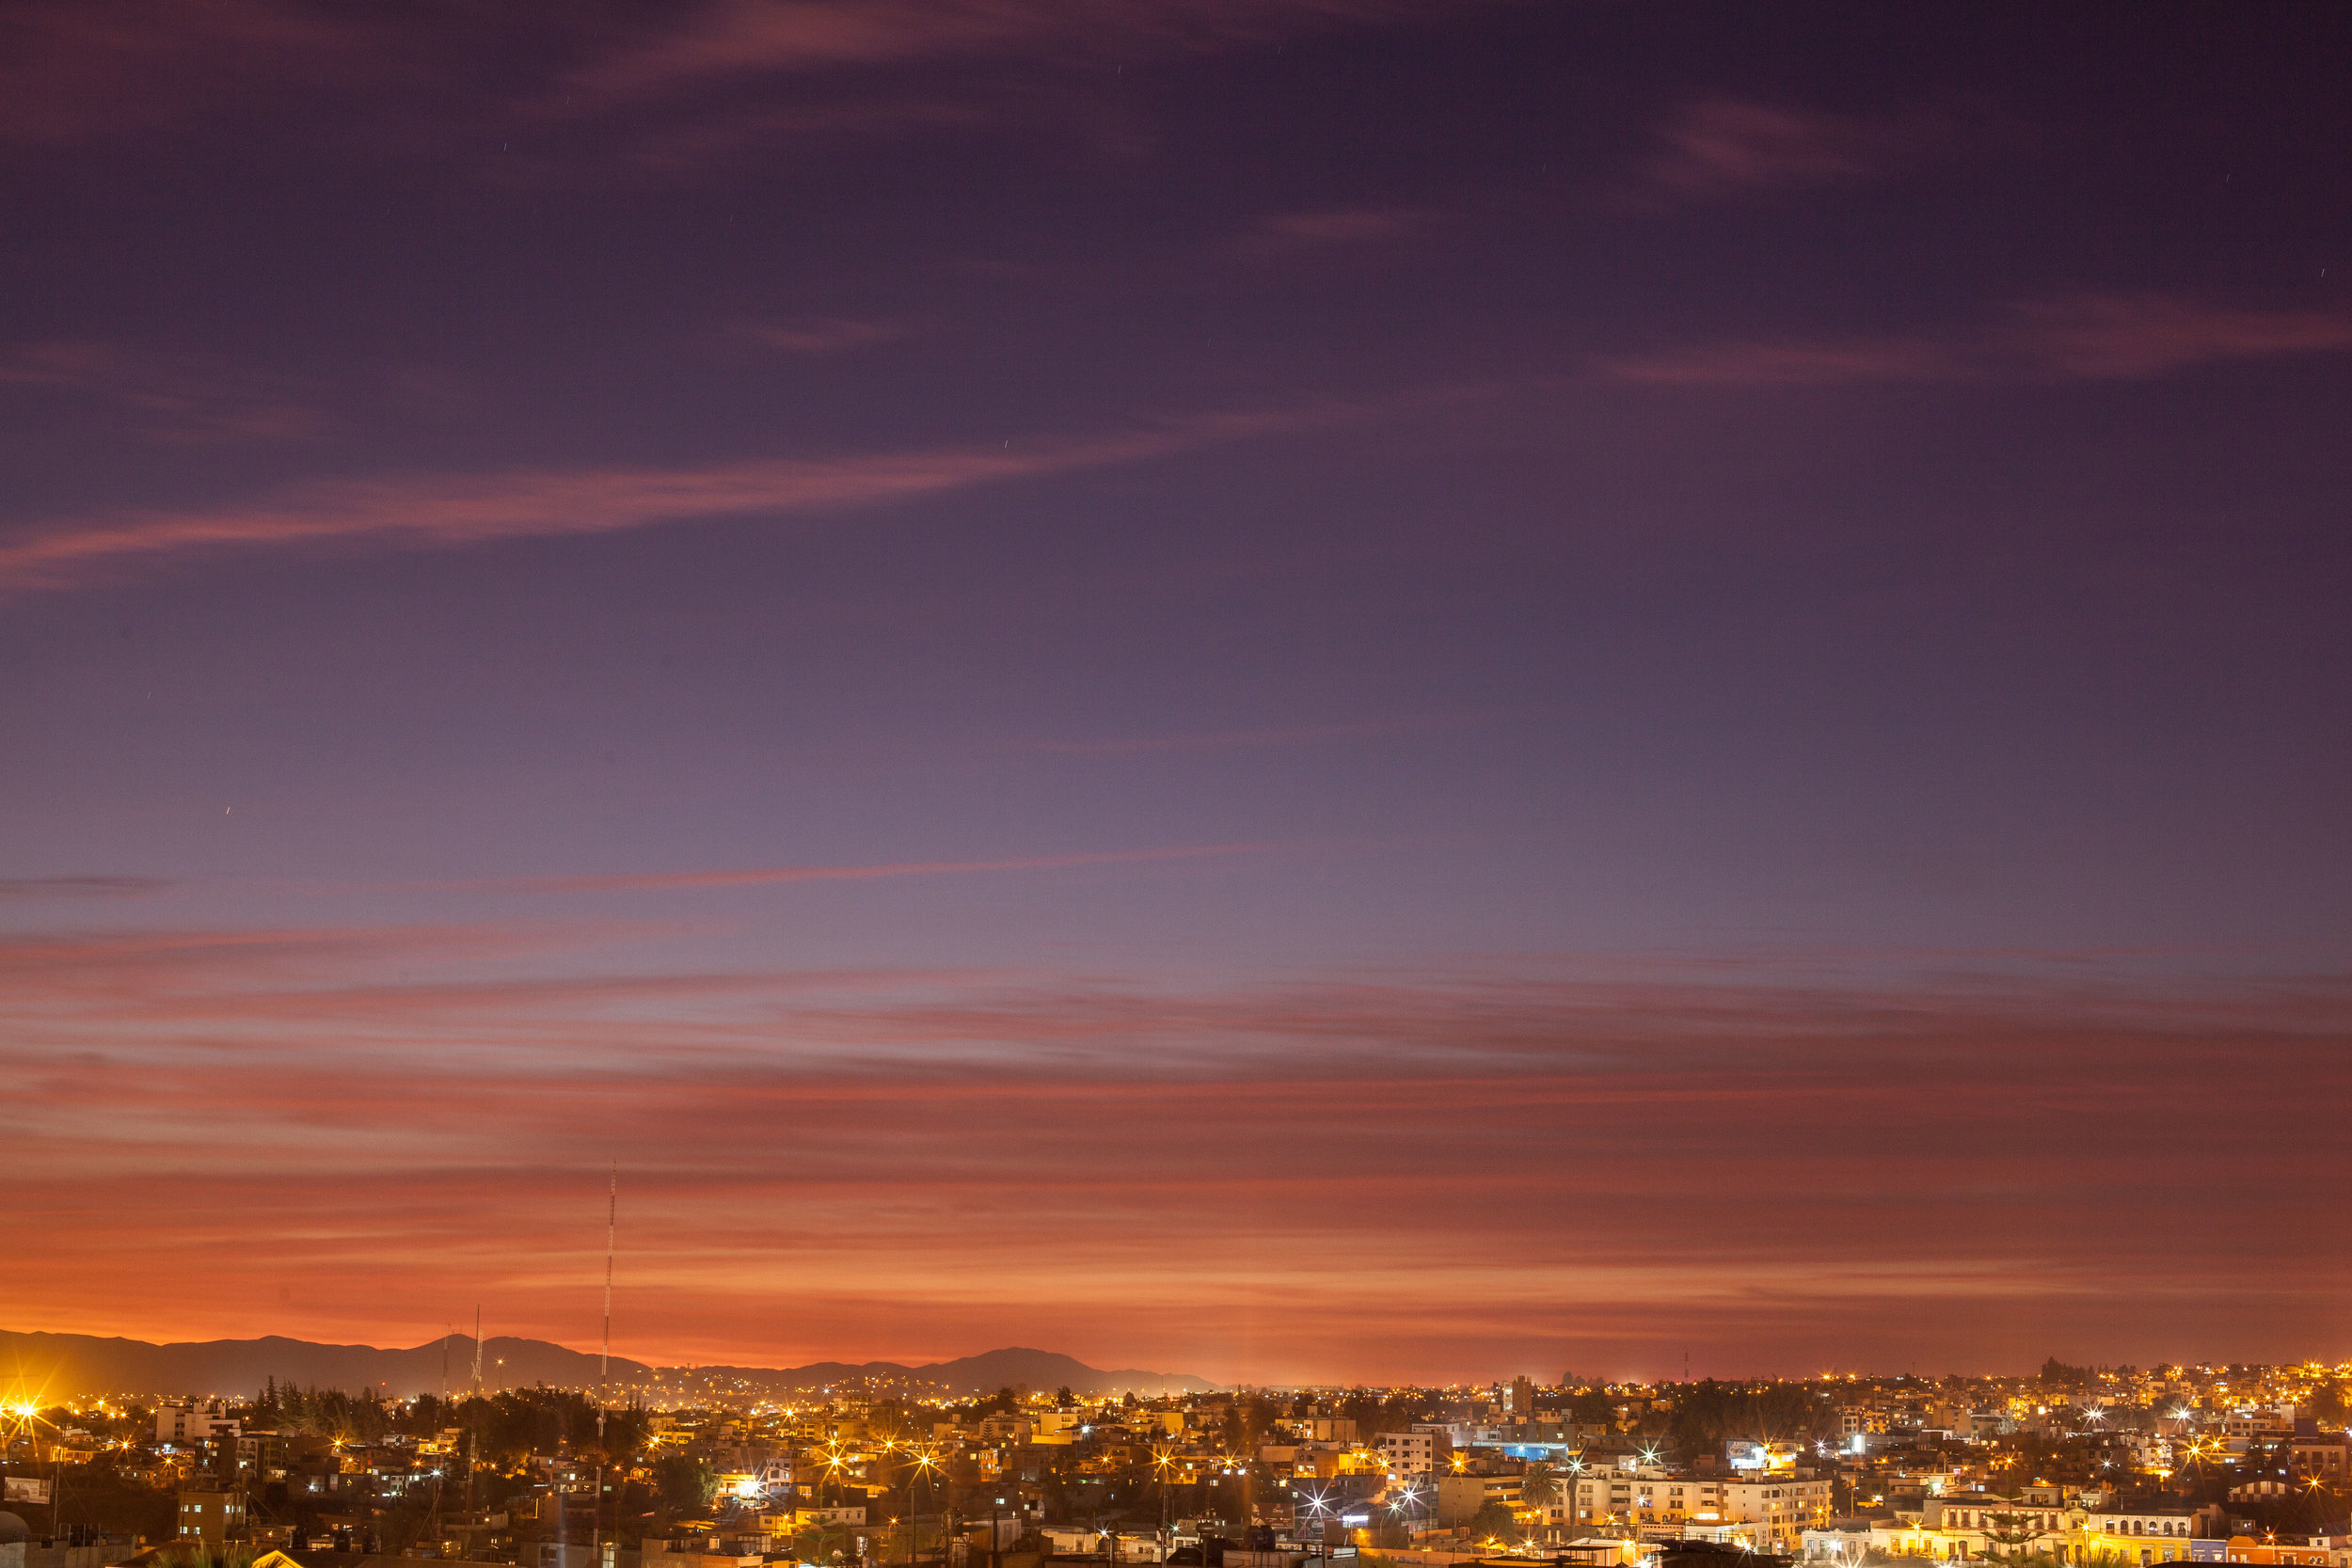 A beautiful sunset over the City of Arequipa in Peru.